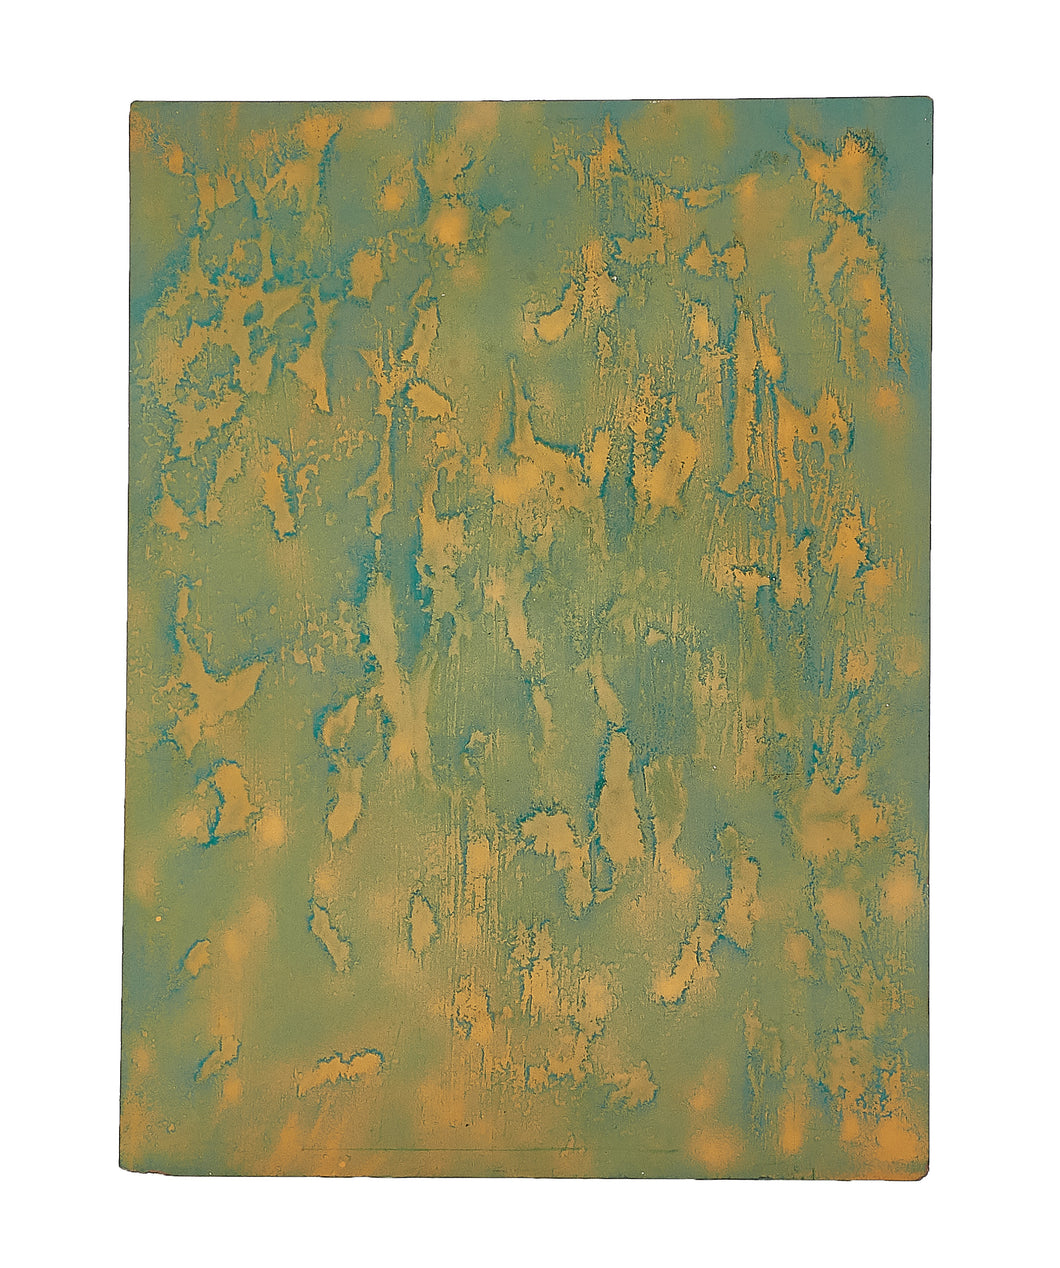 Md Yellow/Green Splattered Panel